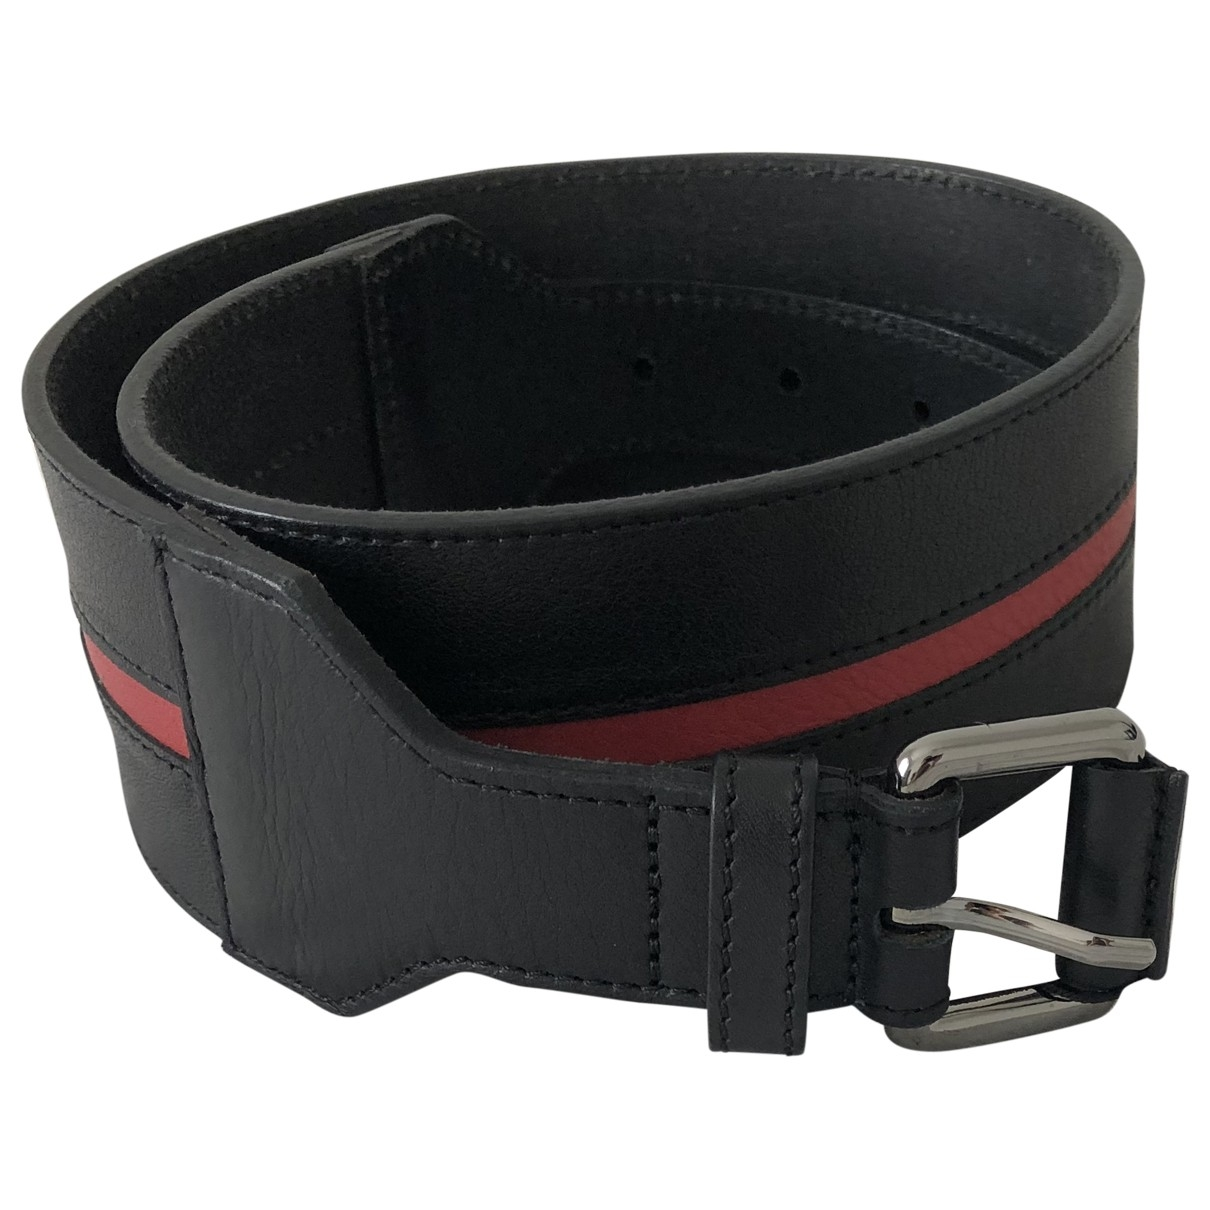 Claudie Pierlot \N Leather belt for Women S International